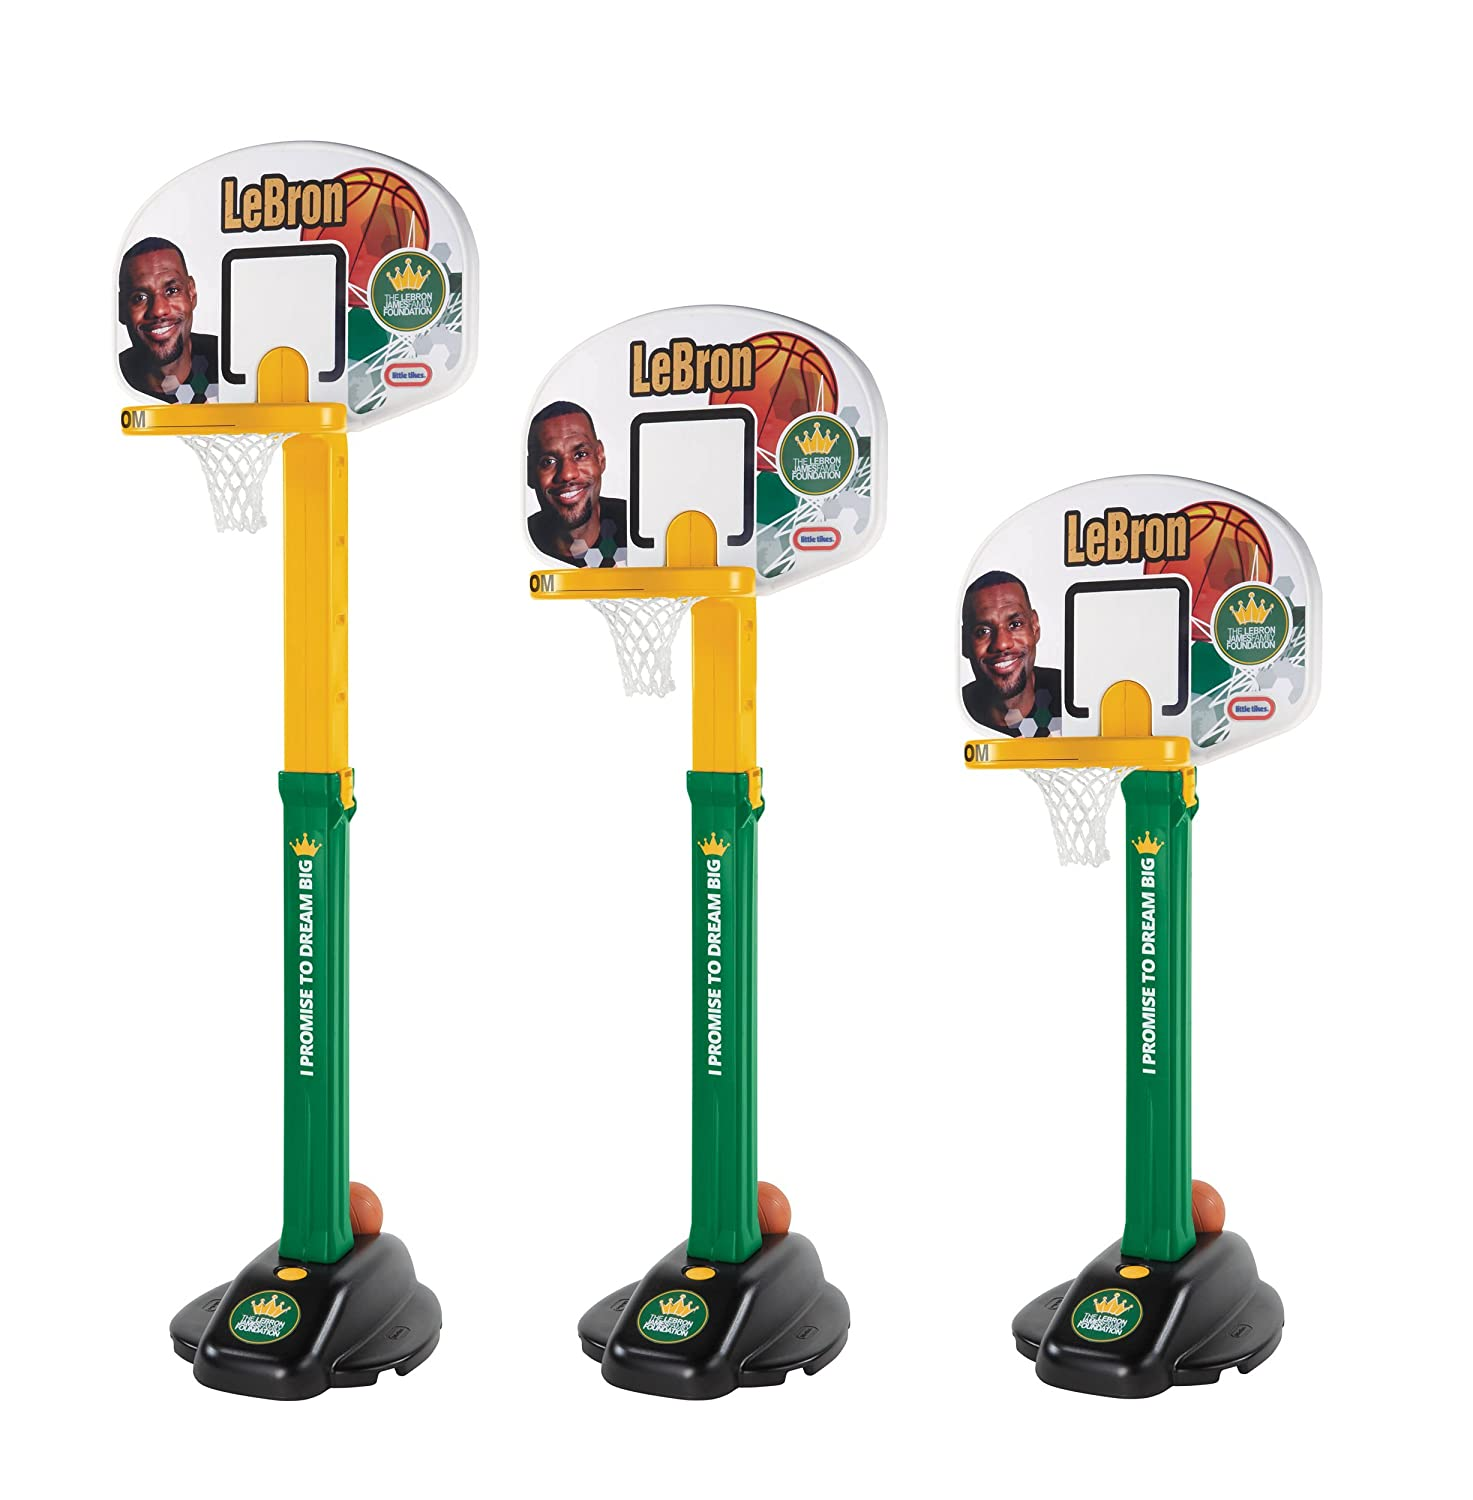 An Image of Little Tikes LeBron James Family Foundation - Dream Big Basketball Hoop